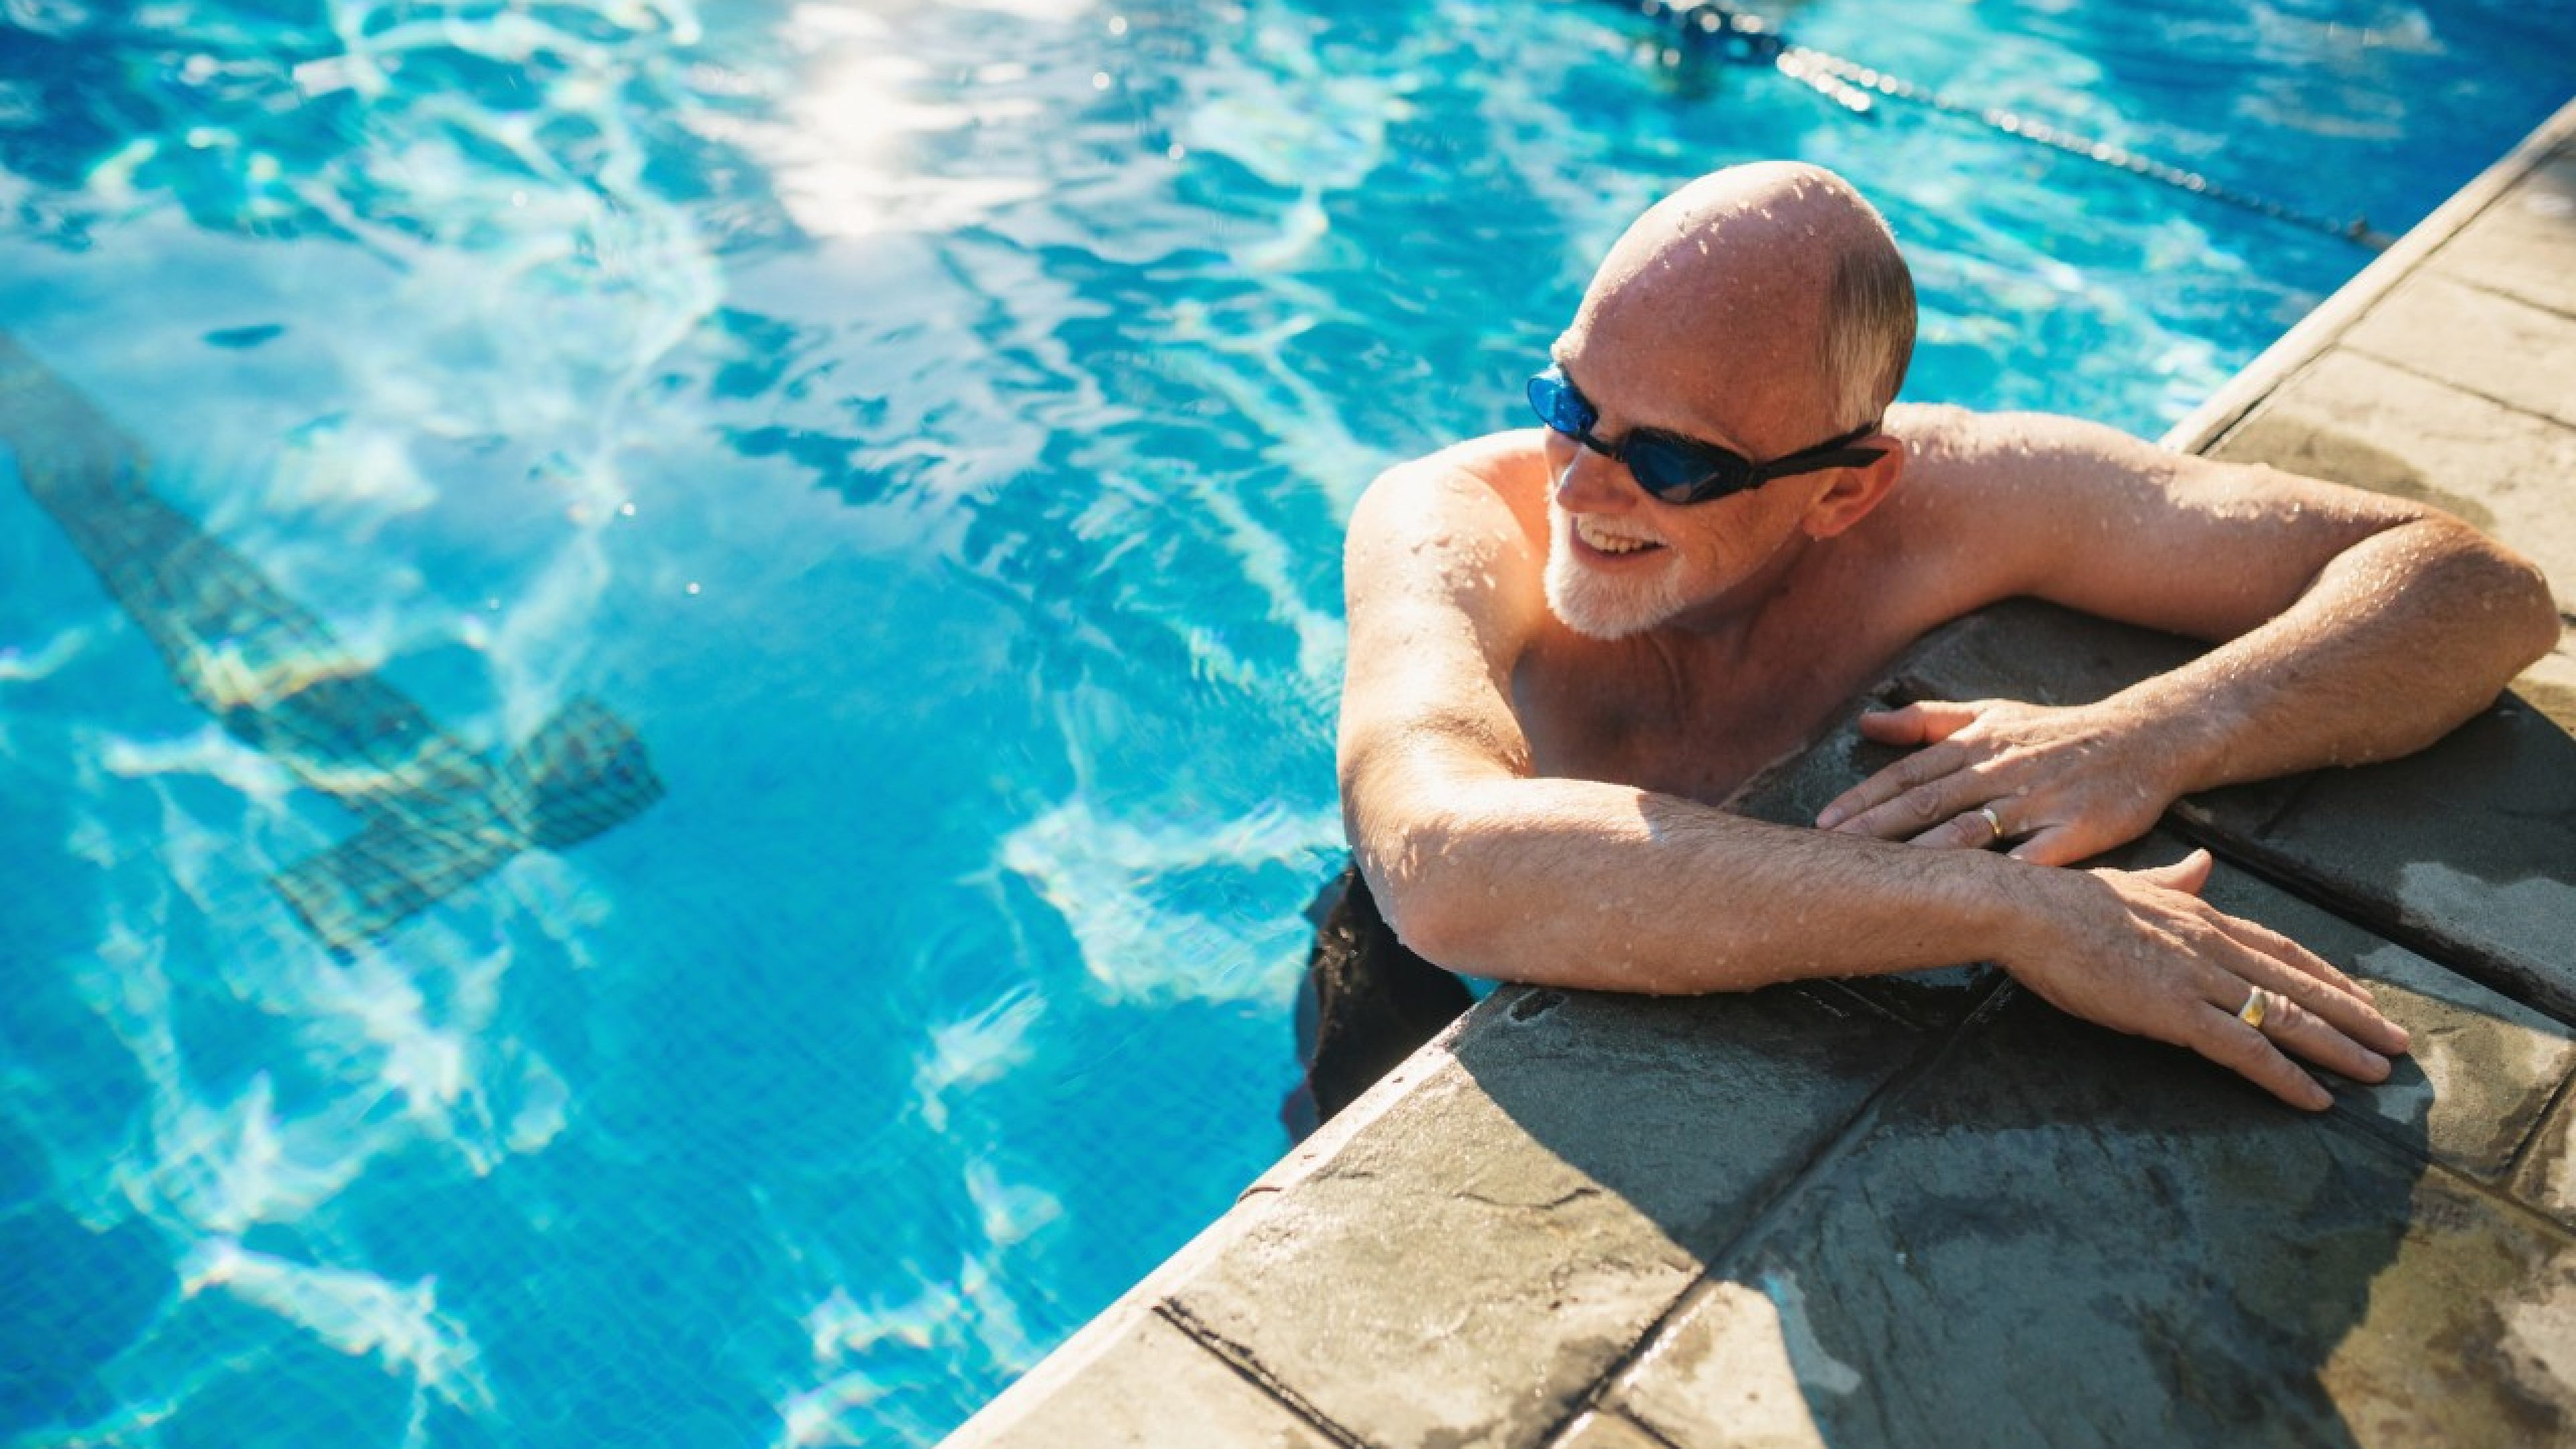 Active oler man working out at outdoor swimming pool